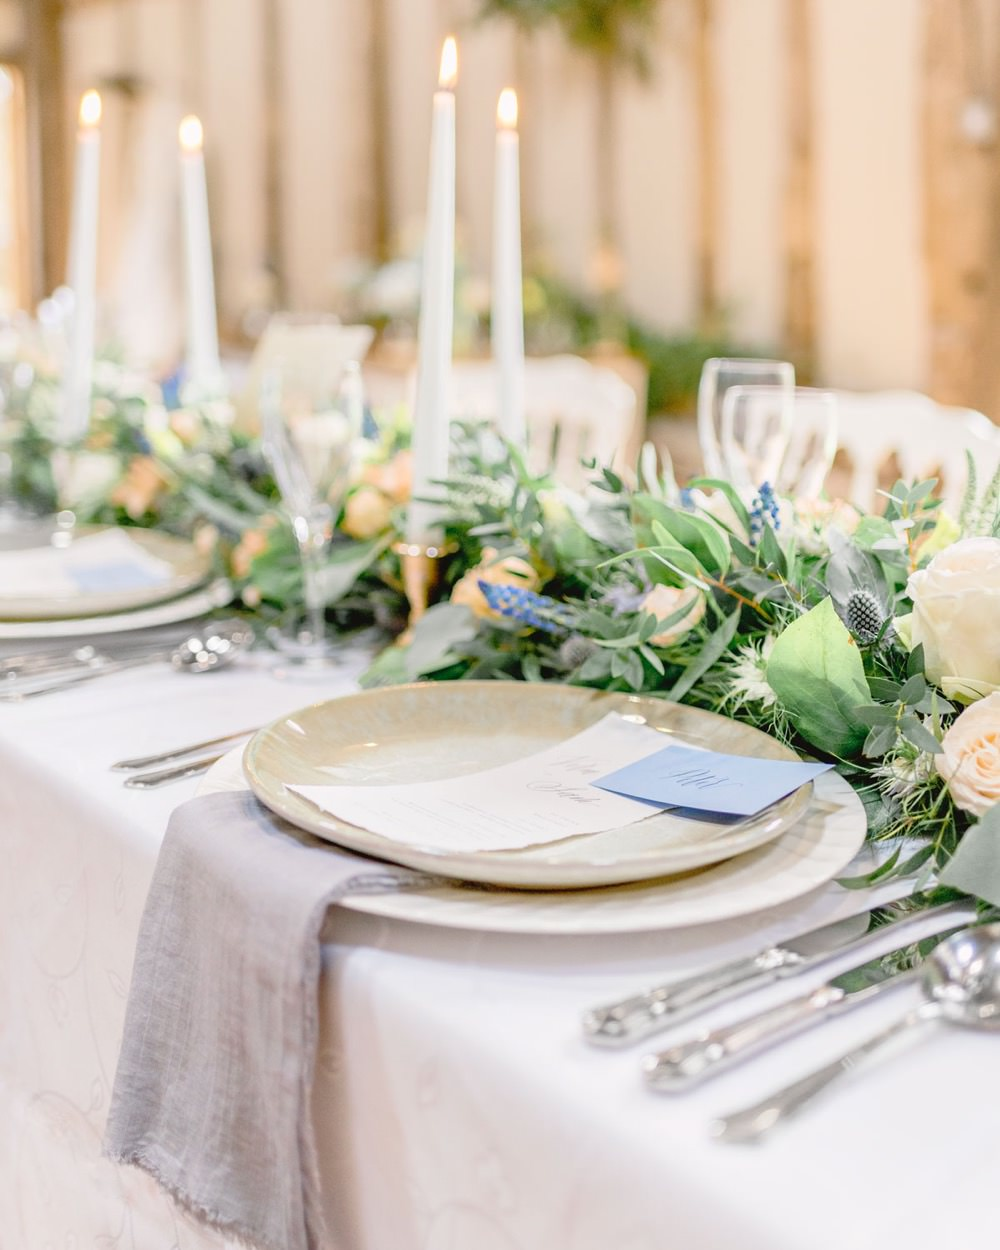 wedding table setting with floral runner